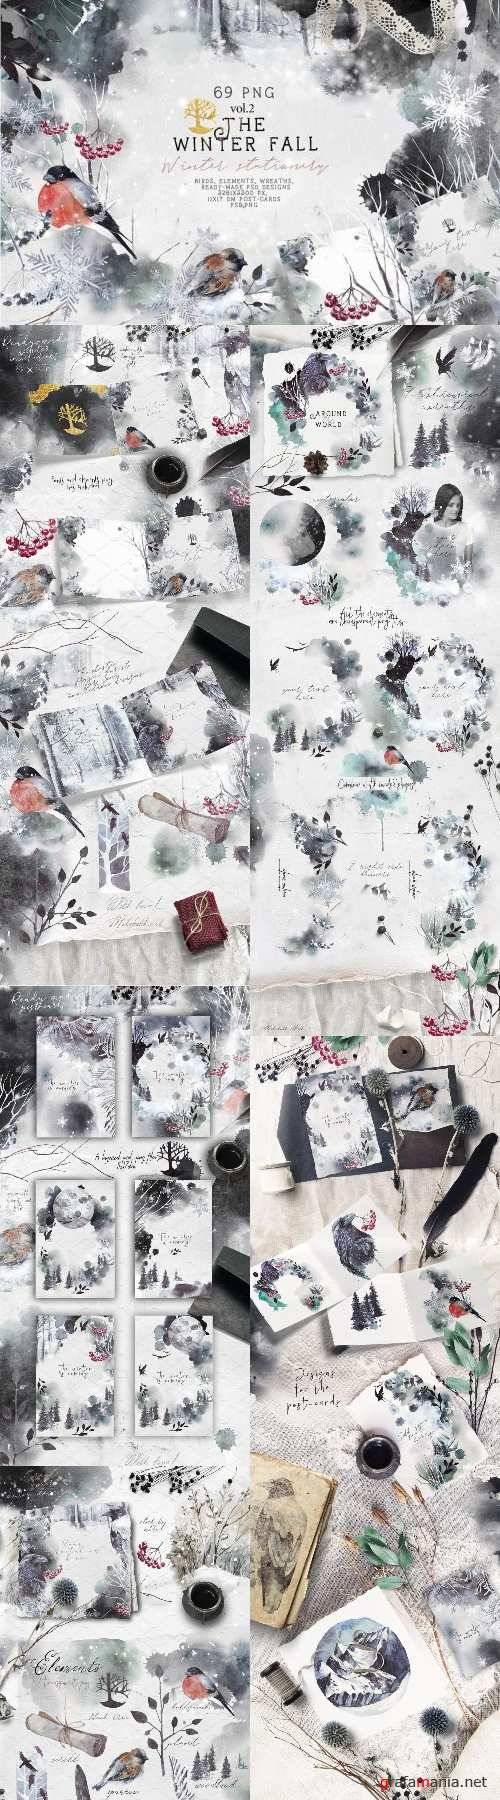 "Vol.2 ""Winter Fall"" Stationery - 2097204"